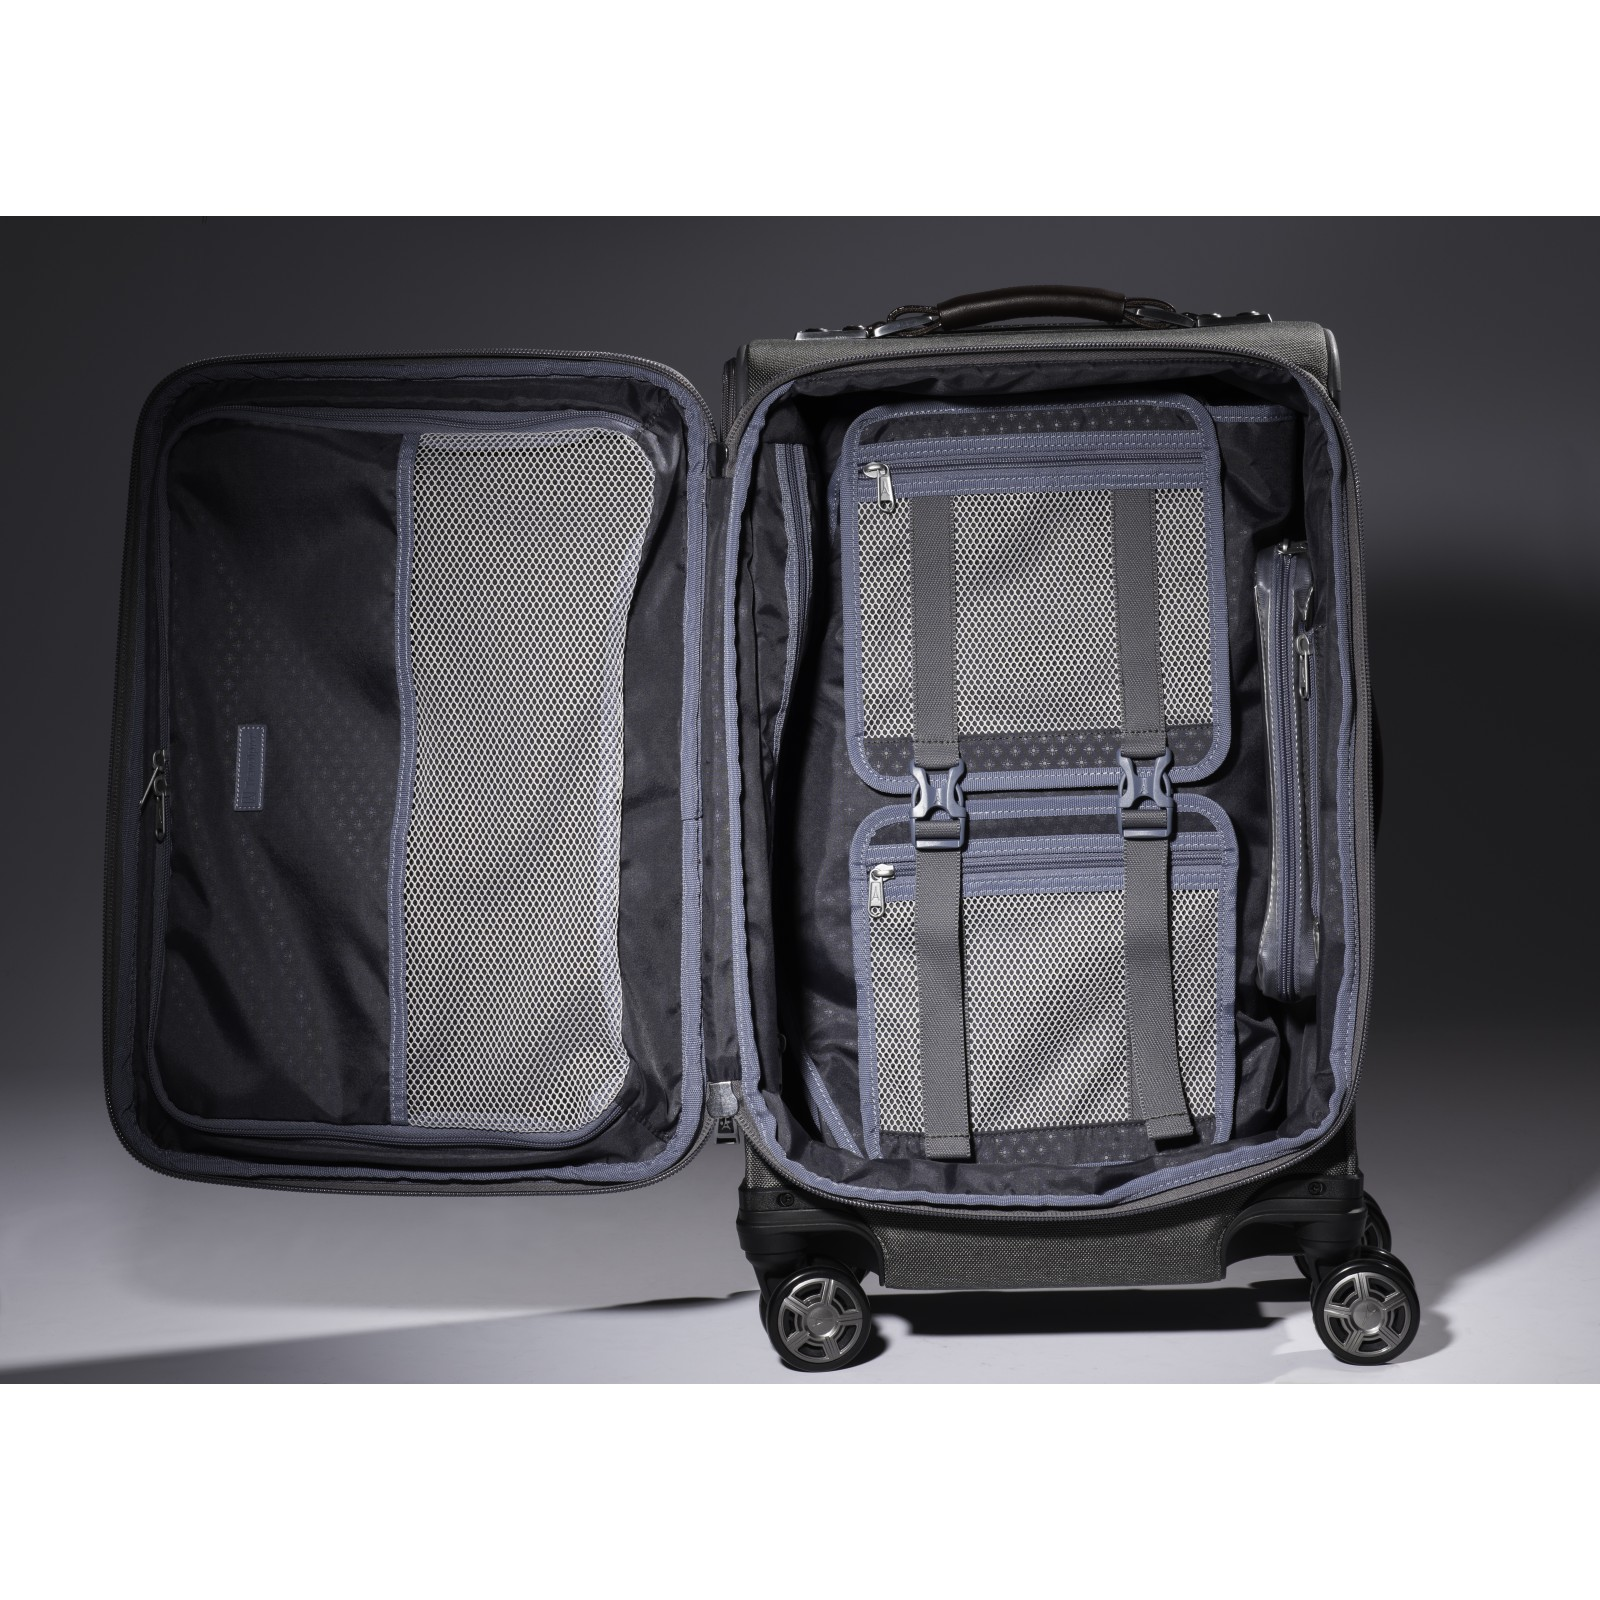 Travelpro Platinum Elite 21 Quot Carry On Expandable Spinner 409186101 Luggage World Mn